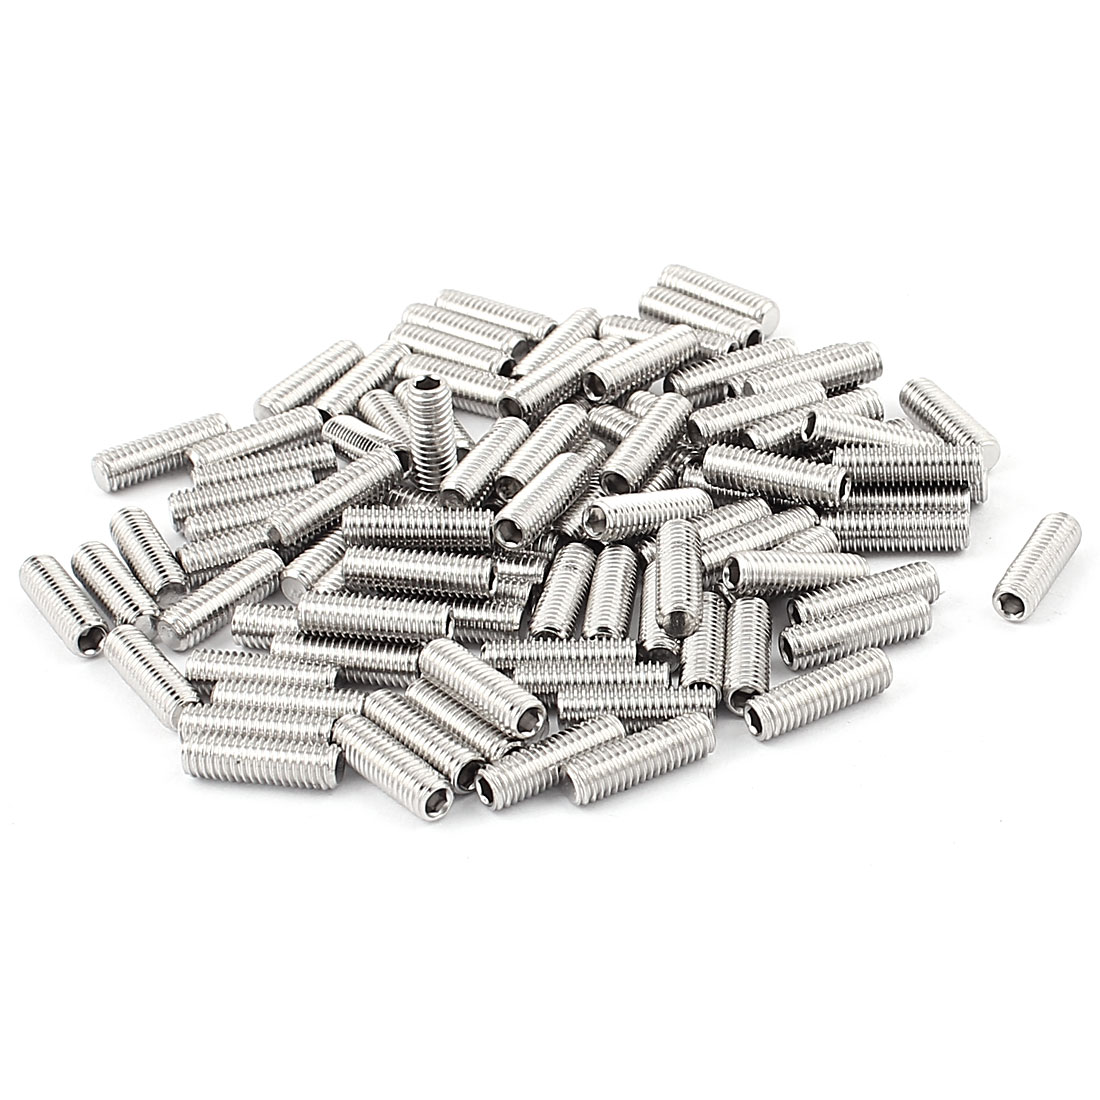 Stainless Steel M5x16mm Hex Socket Flat Point Grub Screws 100Pcs